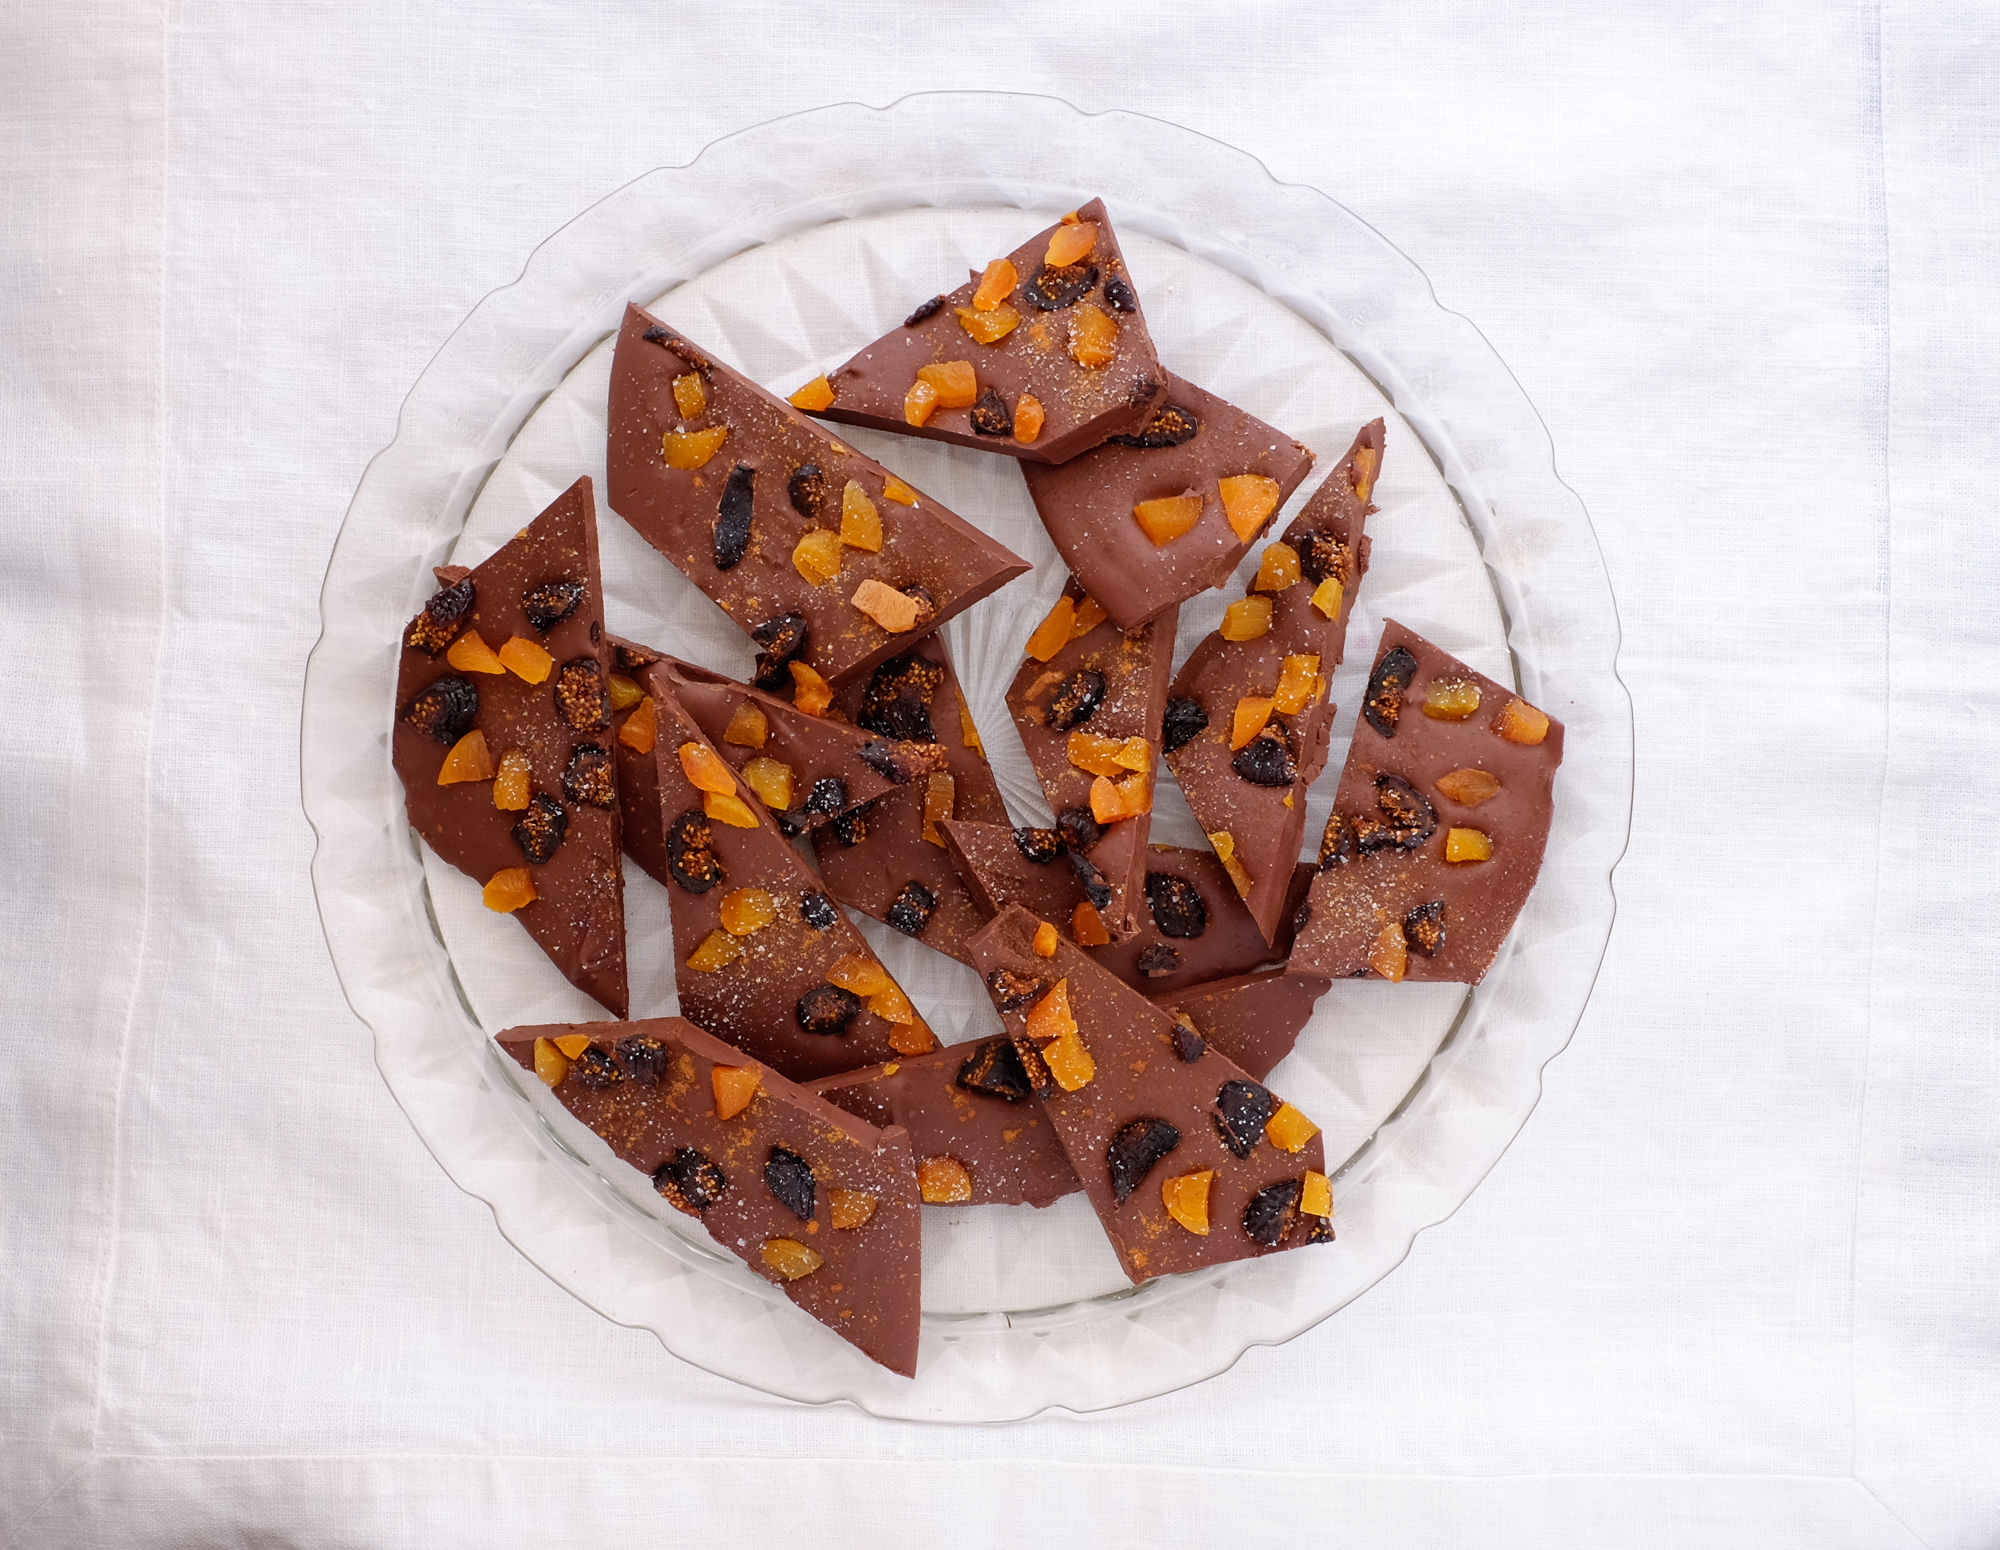 chocolate-bark-with-dried-fruit-and-spices